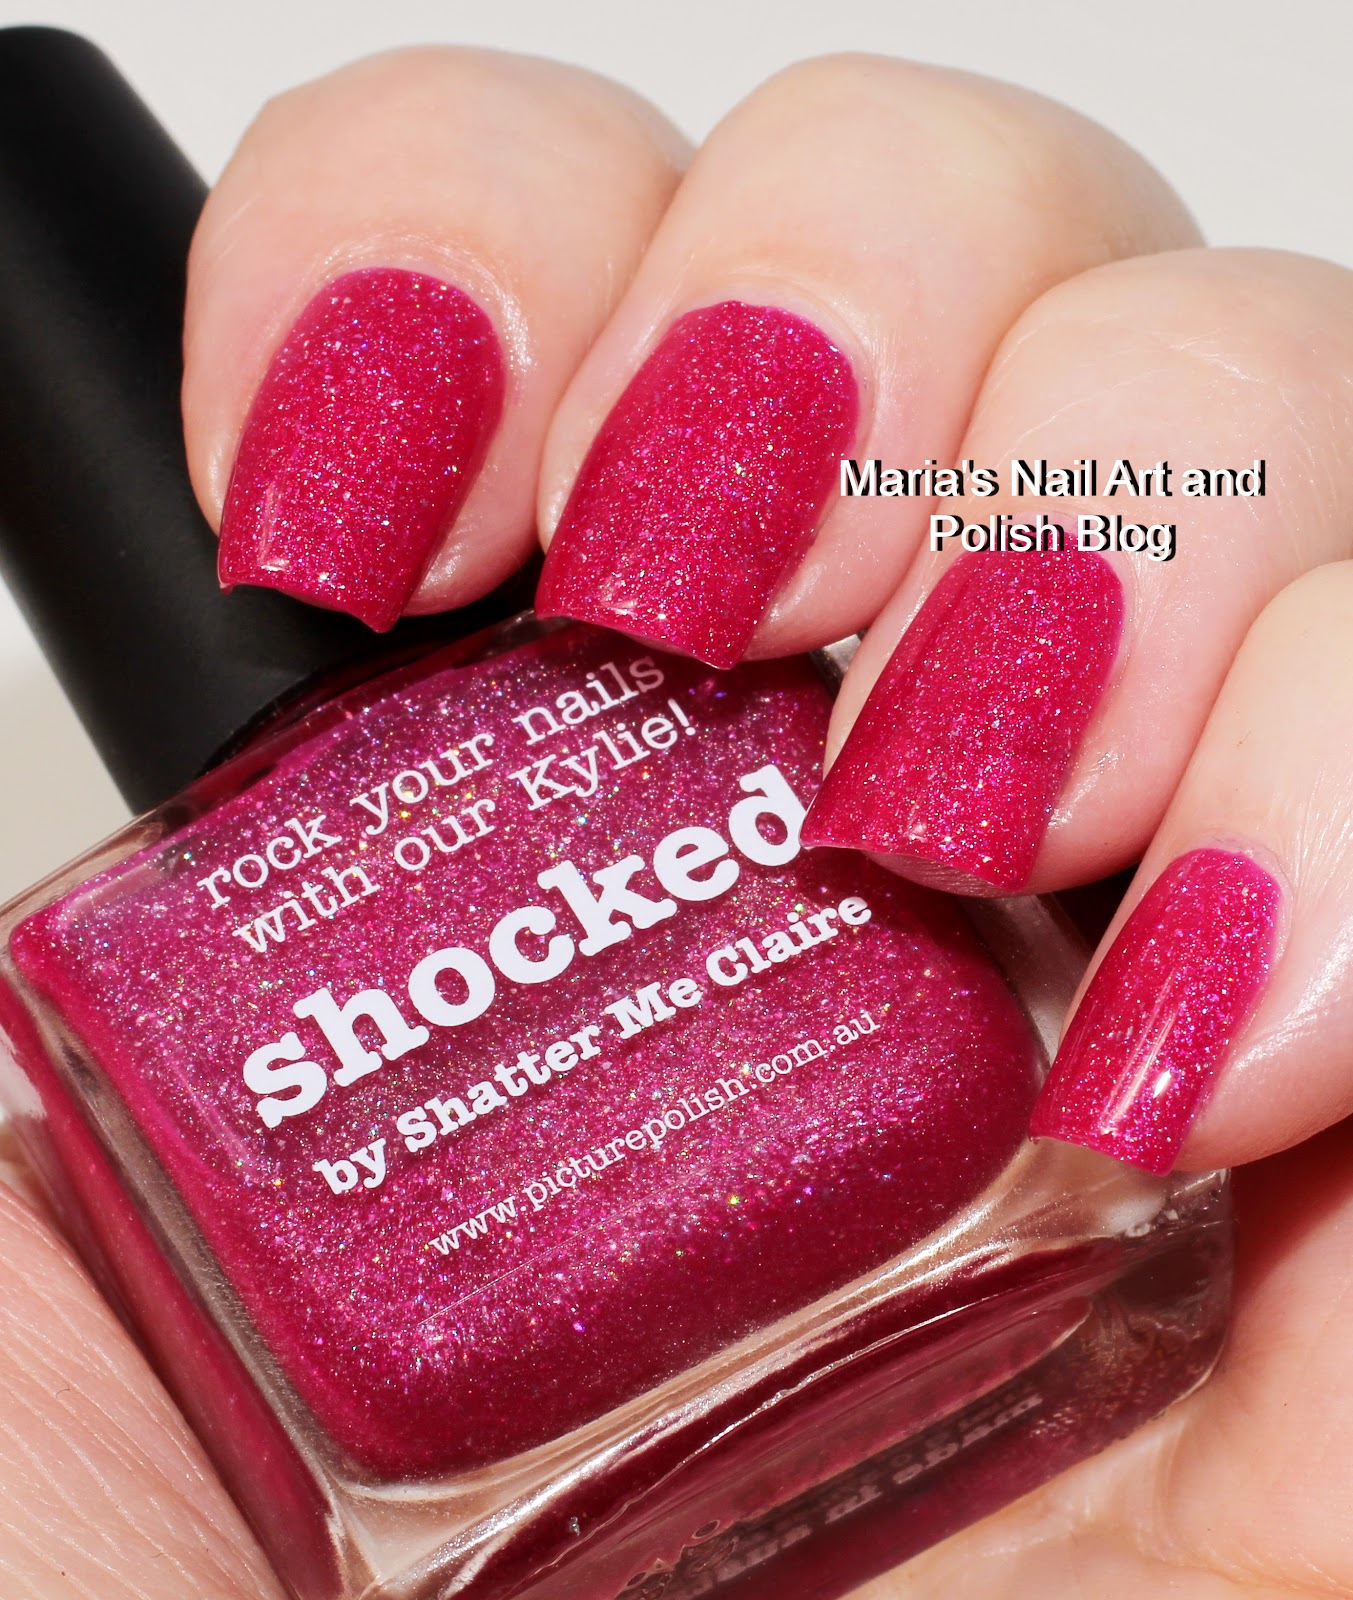 Marias nail art and polish blog picture polish shocked swatches prinsesfo Choice Image